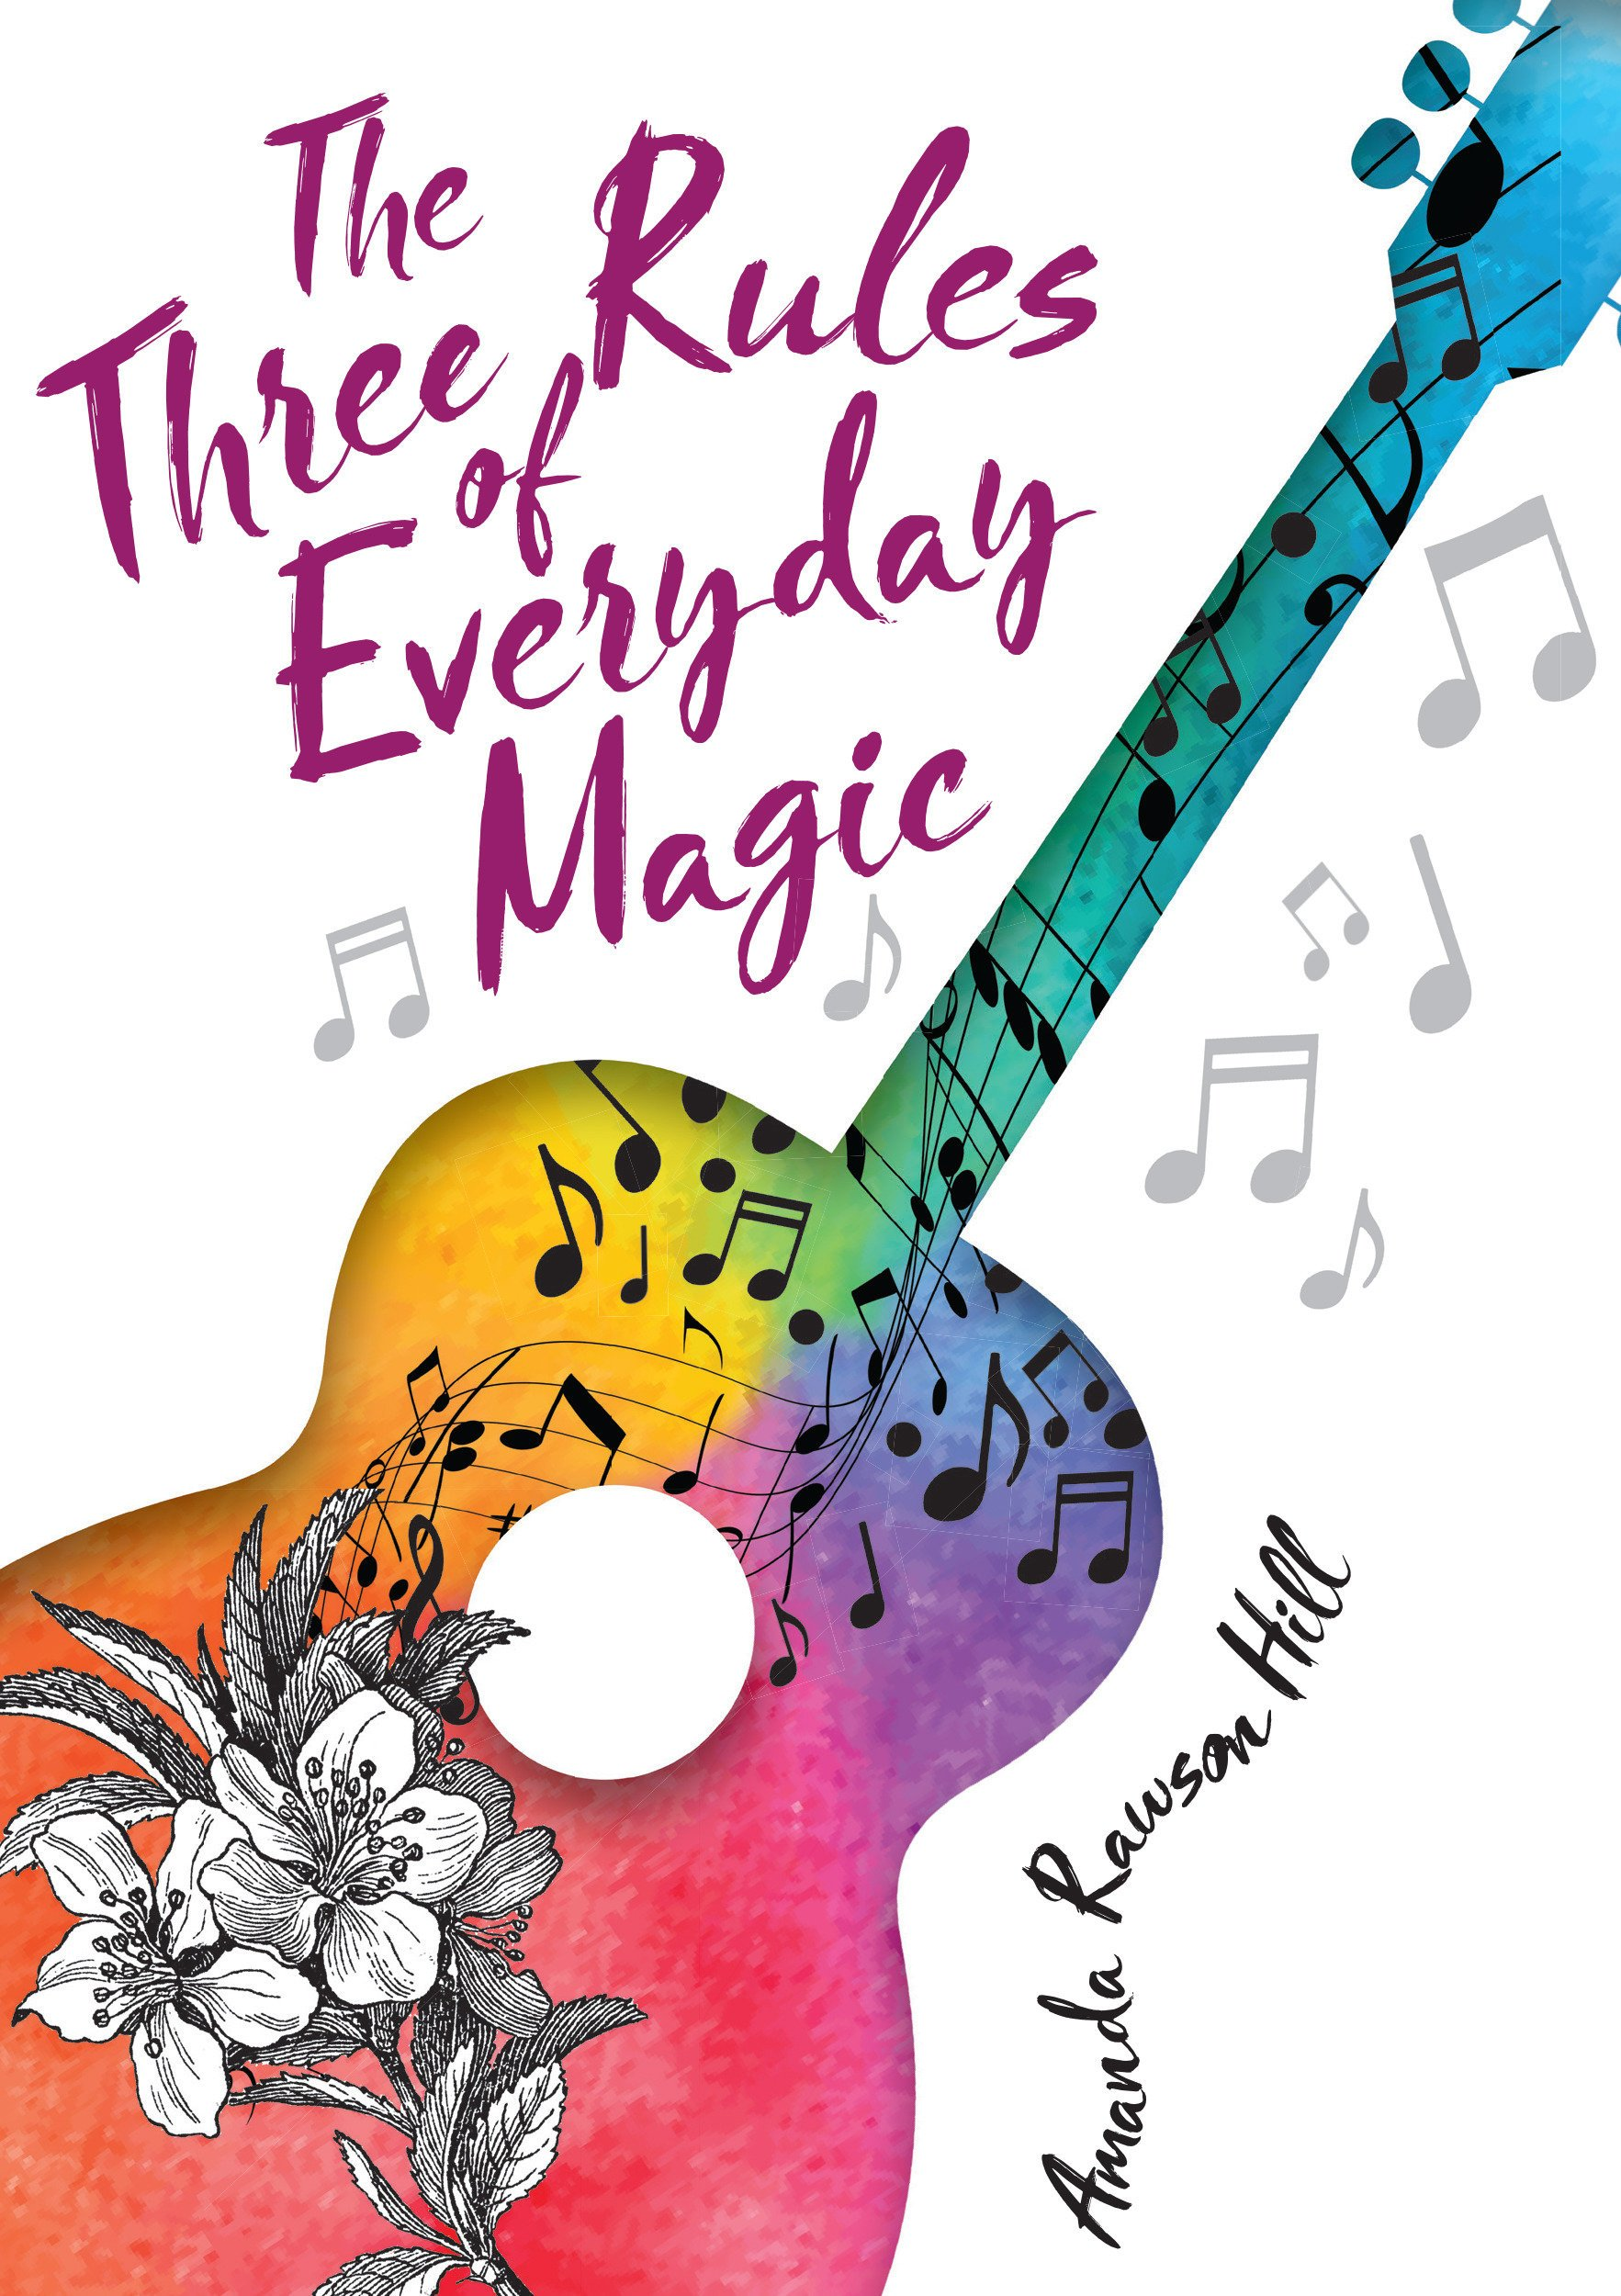 The Three Rules of Everyday Magic pdf